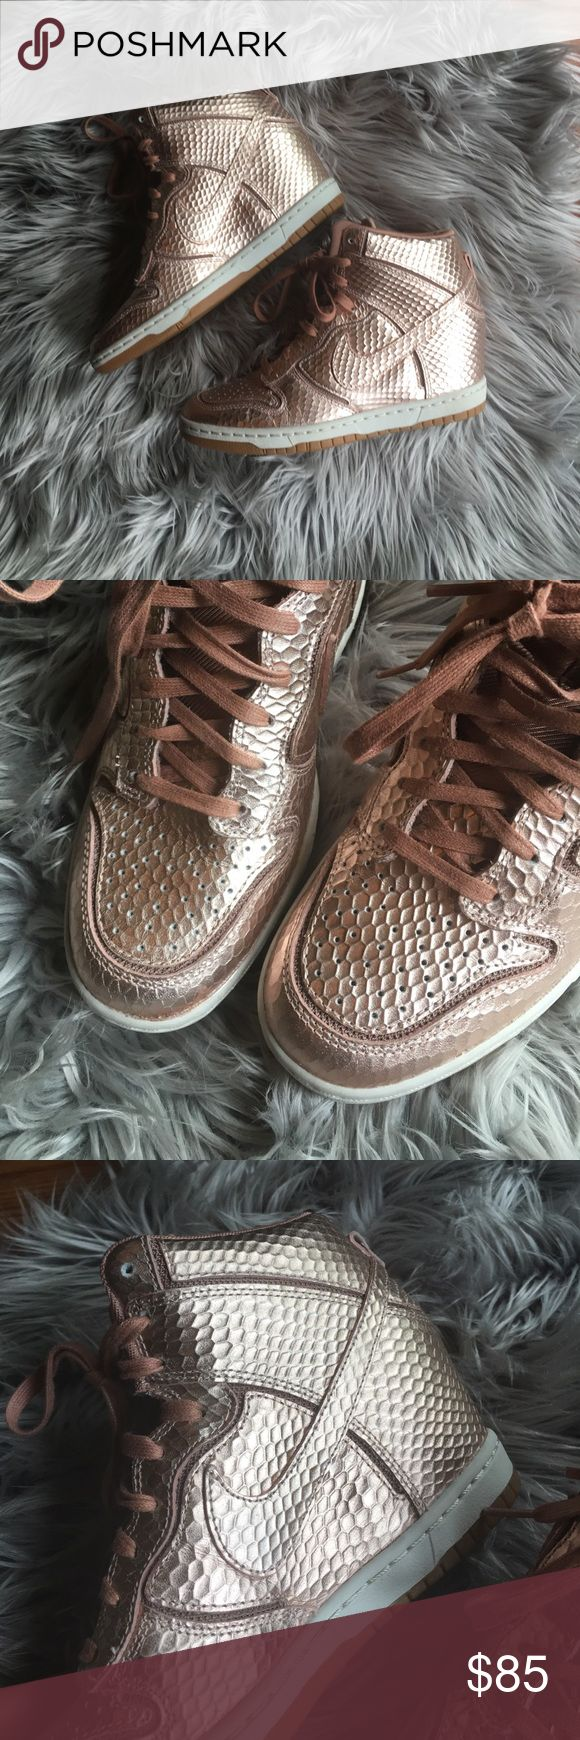 Nike Sky Hi Dunk Rose Gold Wedges Such awesome shoes Hi top style with a built in wedge. Worn once, near perfect condition. There is a tiny bit of wear on the back of one of the shoes (please see last picture) but you wouldn't notice unless you were looking for it.  Open to offers  Nike Shoes Sneakers